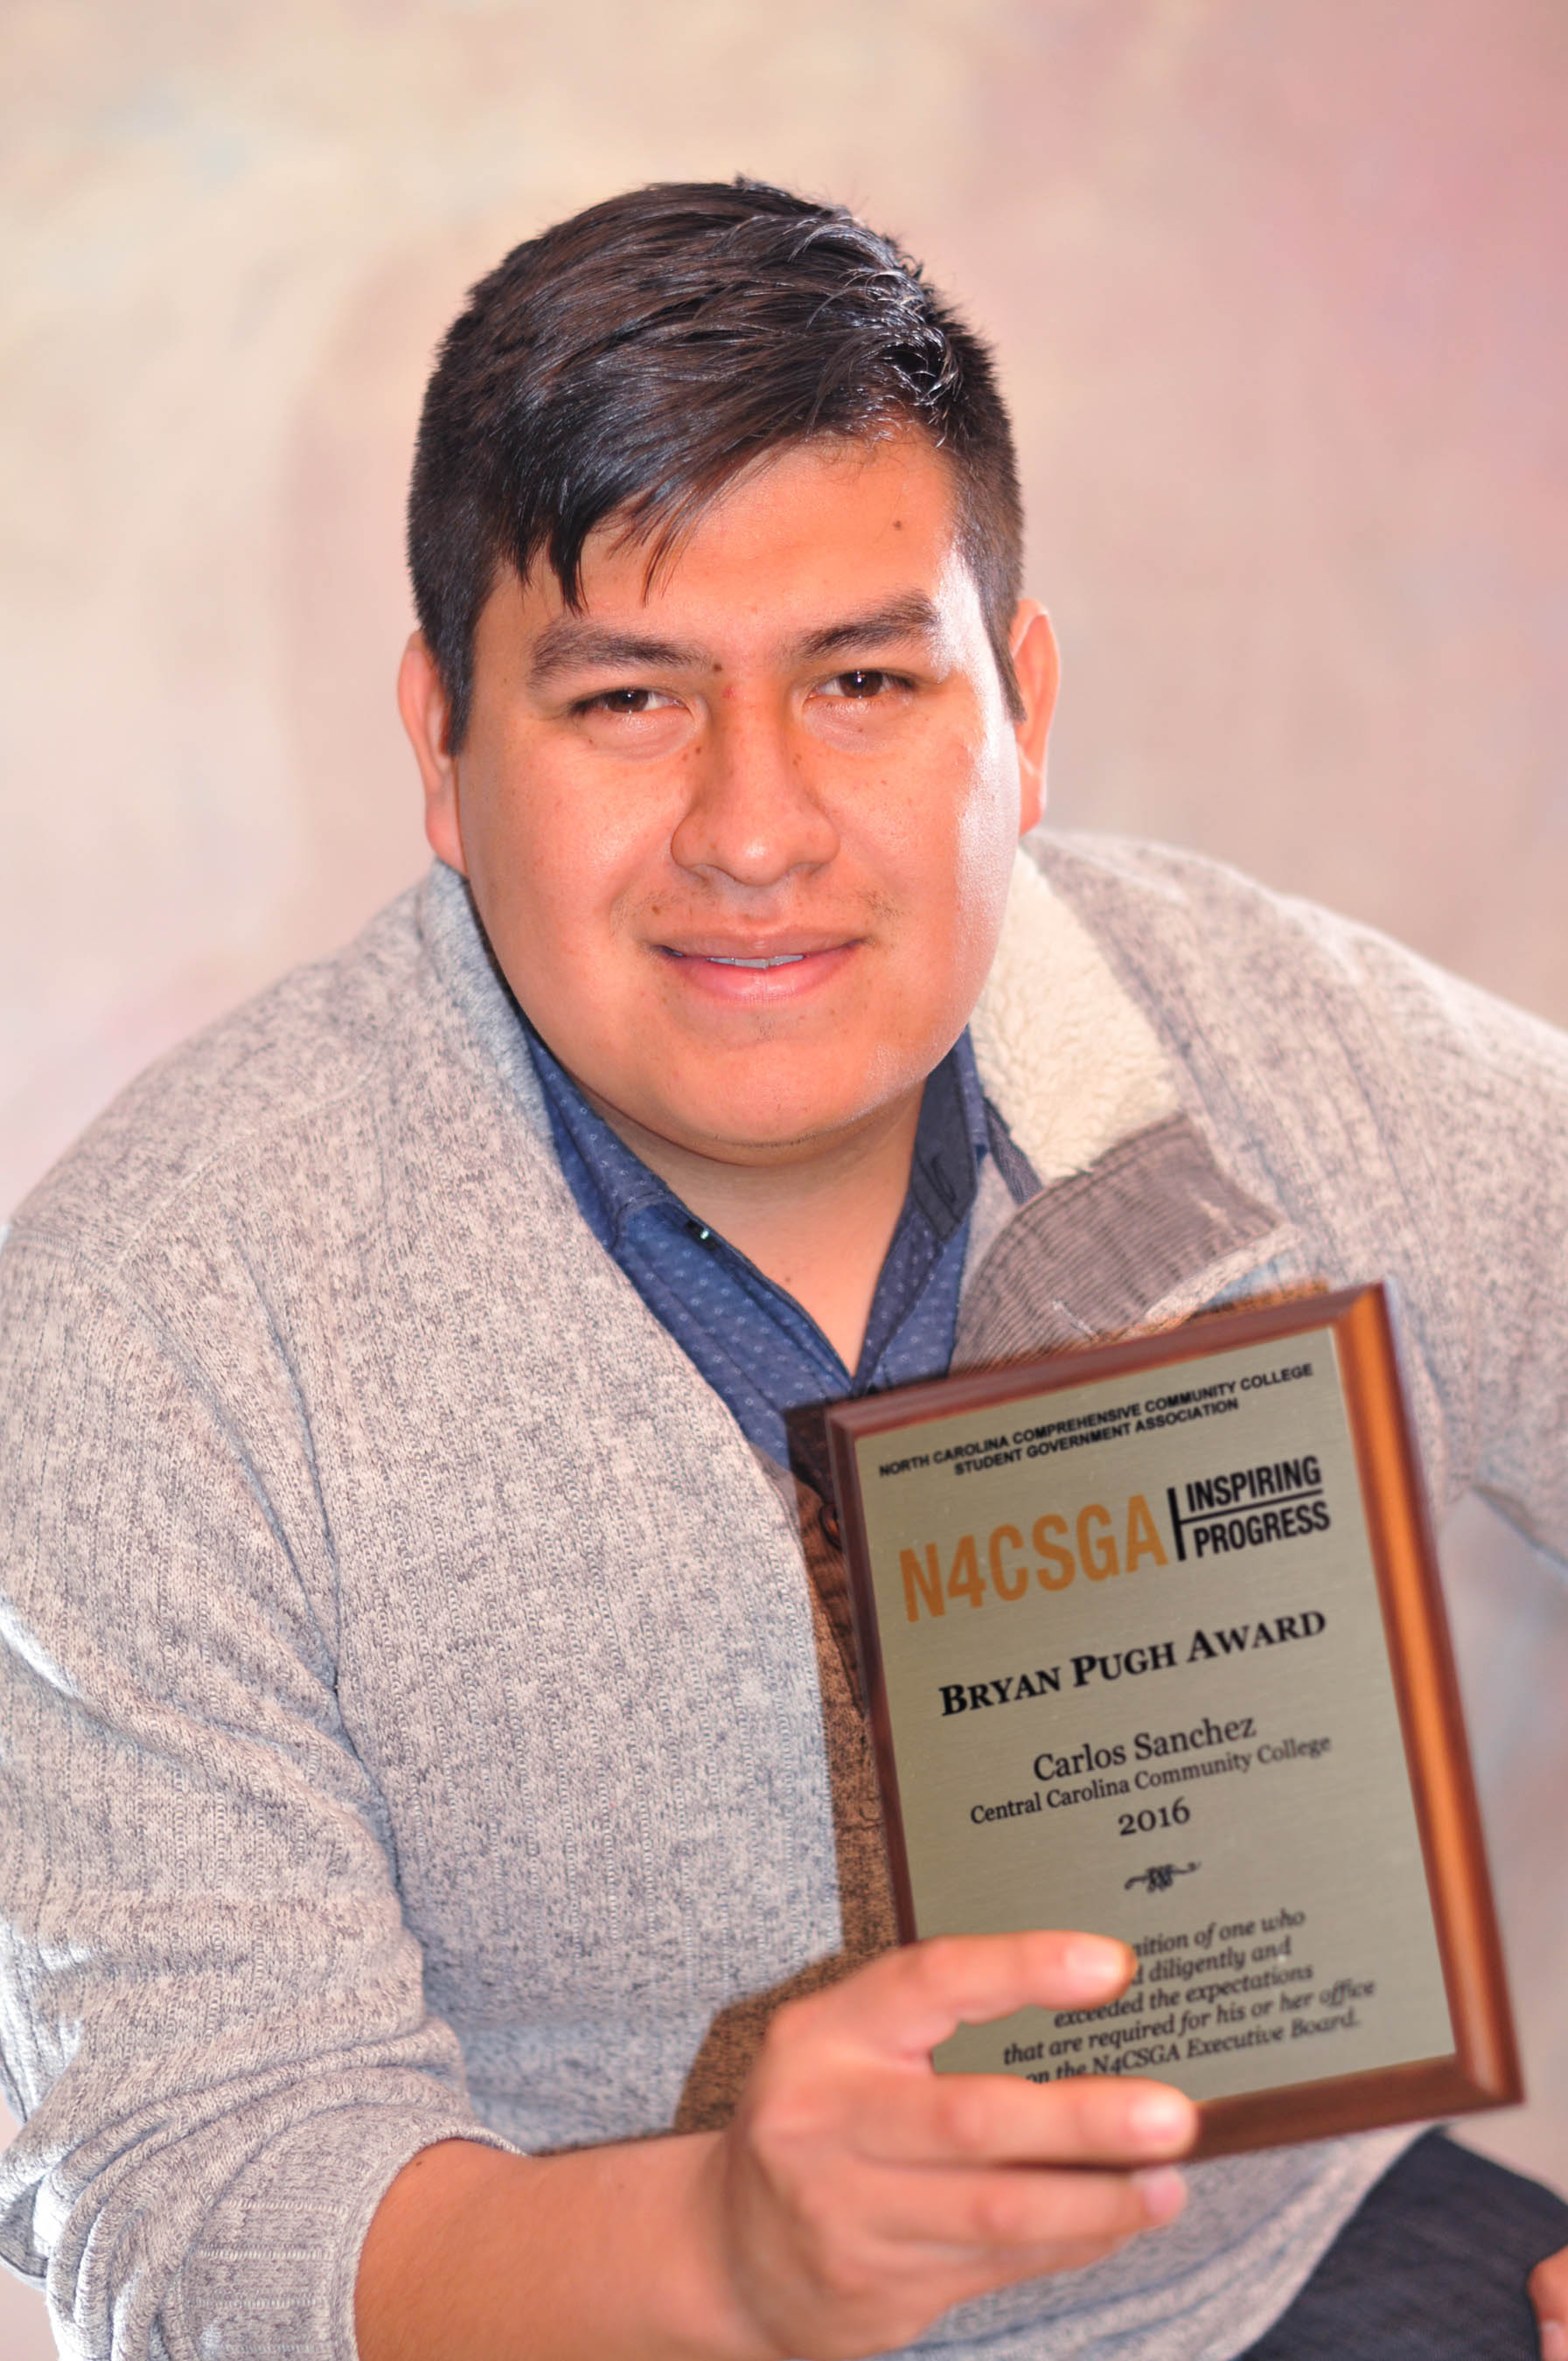 Click to enlarge,  Central Carolina Community College Student Government Association President Carlos Sanchez-Mendez of Siler City recently received the Bryan Pugh Award during the spring conference of the North Carolina Comprehensive Community College Student Government Association (N4CSGA).